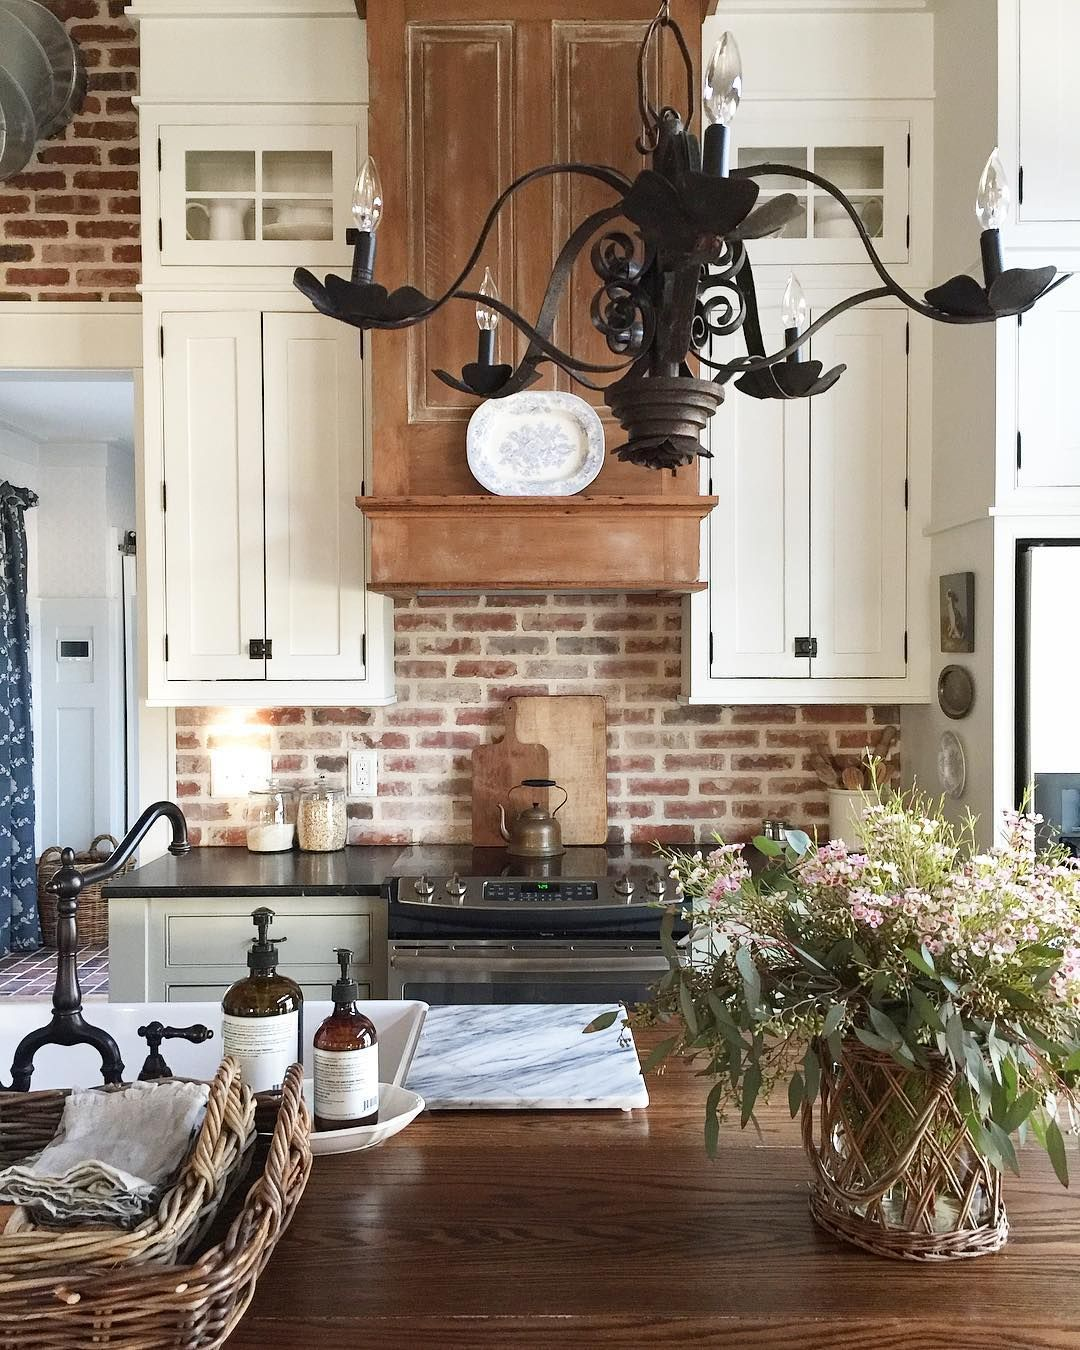 Cuisine Schmidt Valence Pin By Kelli Peveto On Craving Cuisine Spaces In 2019 Home Decor